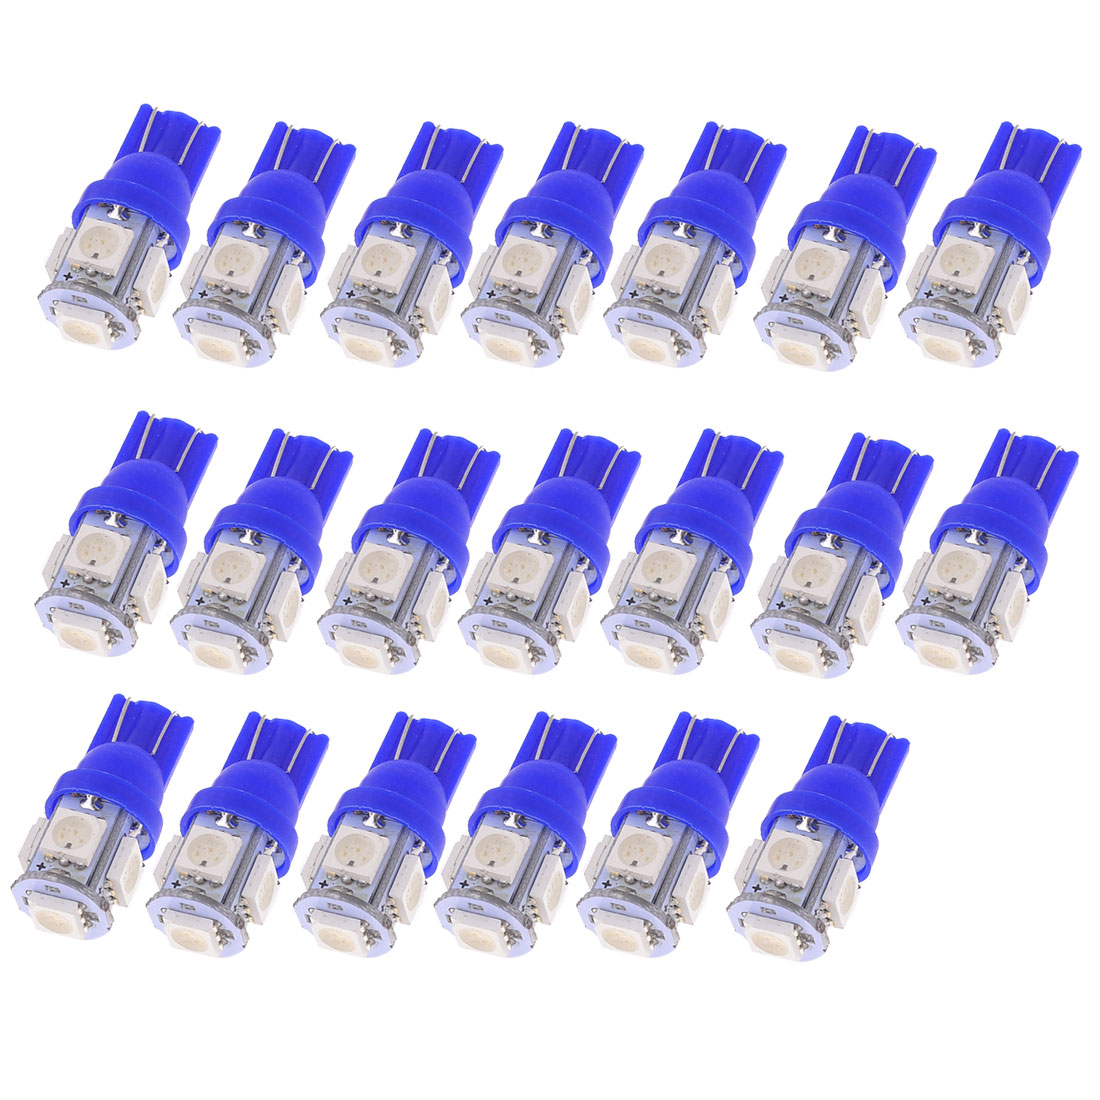 T10 194 168 W5W 5050 SMD 5 LED Car Side Light Bulb Dashboard Lamp Blue 20 Pcs